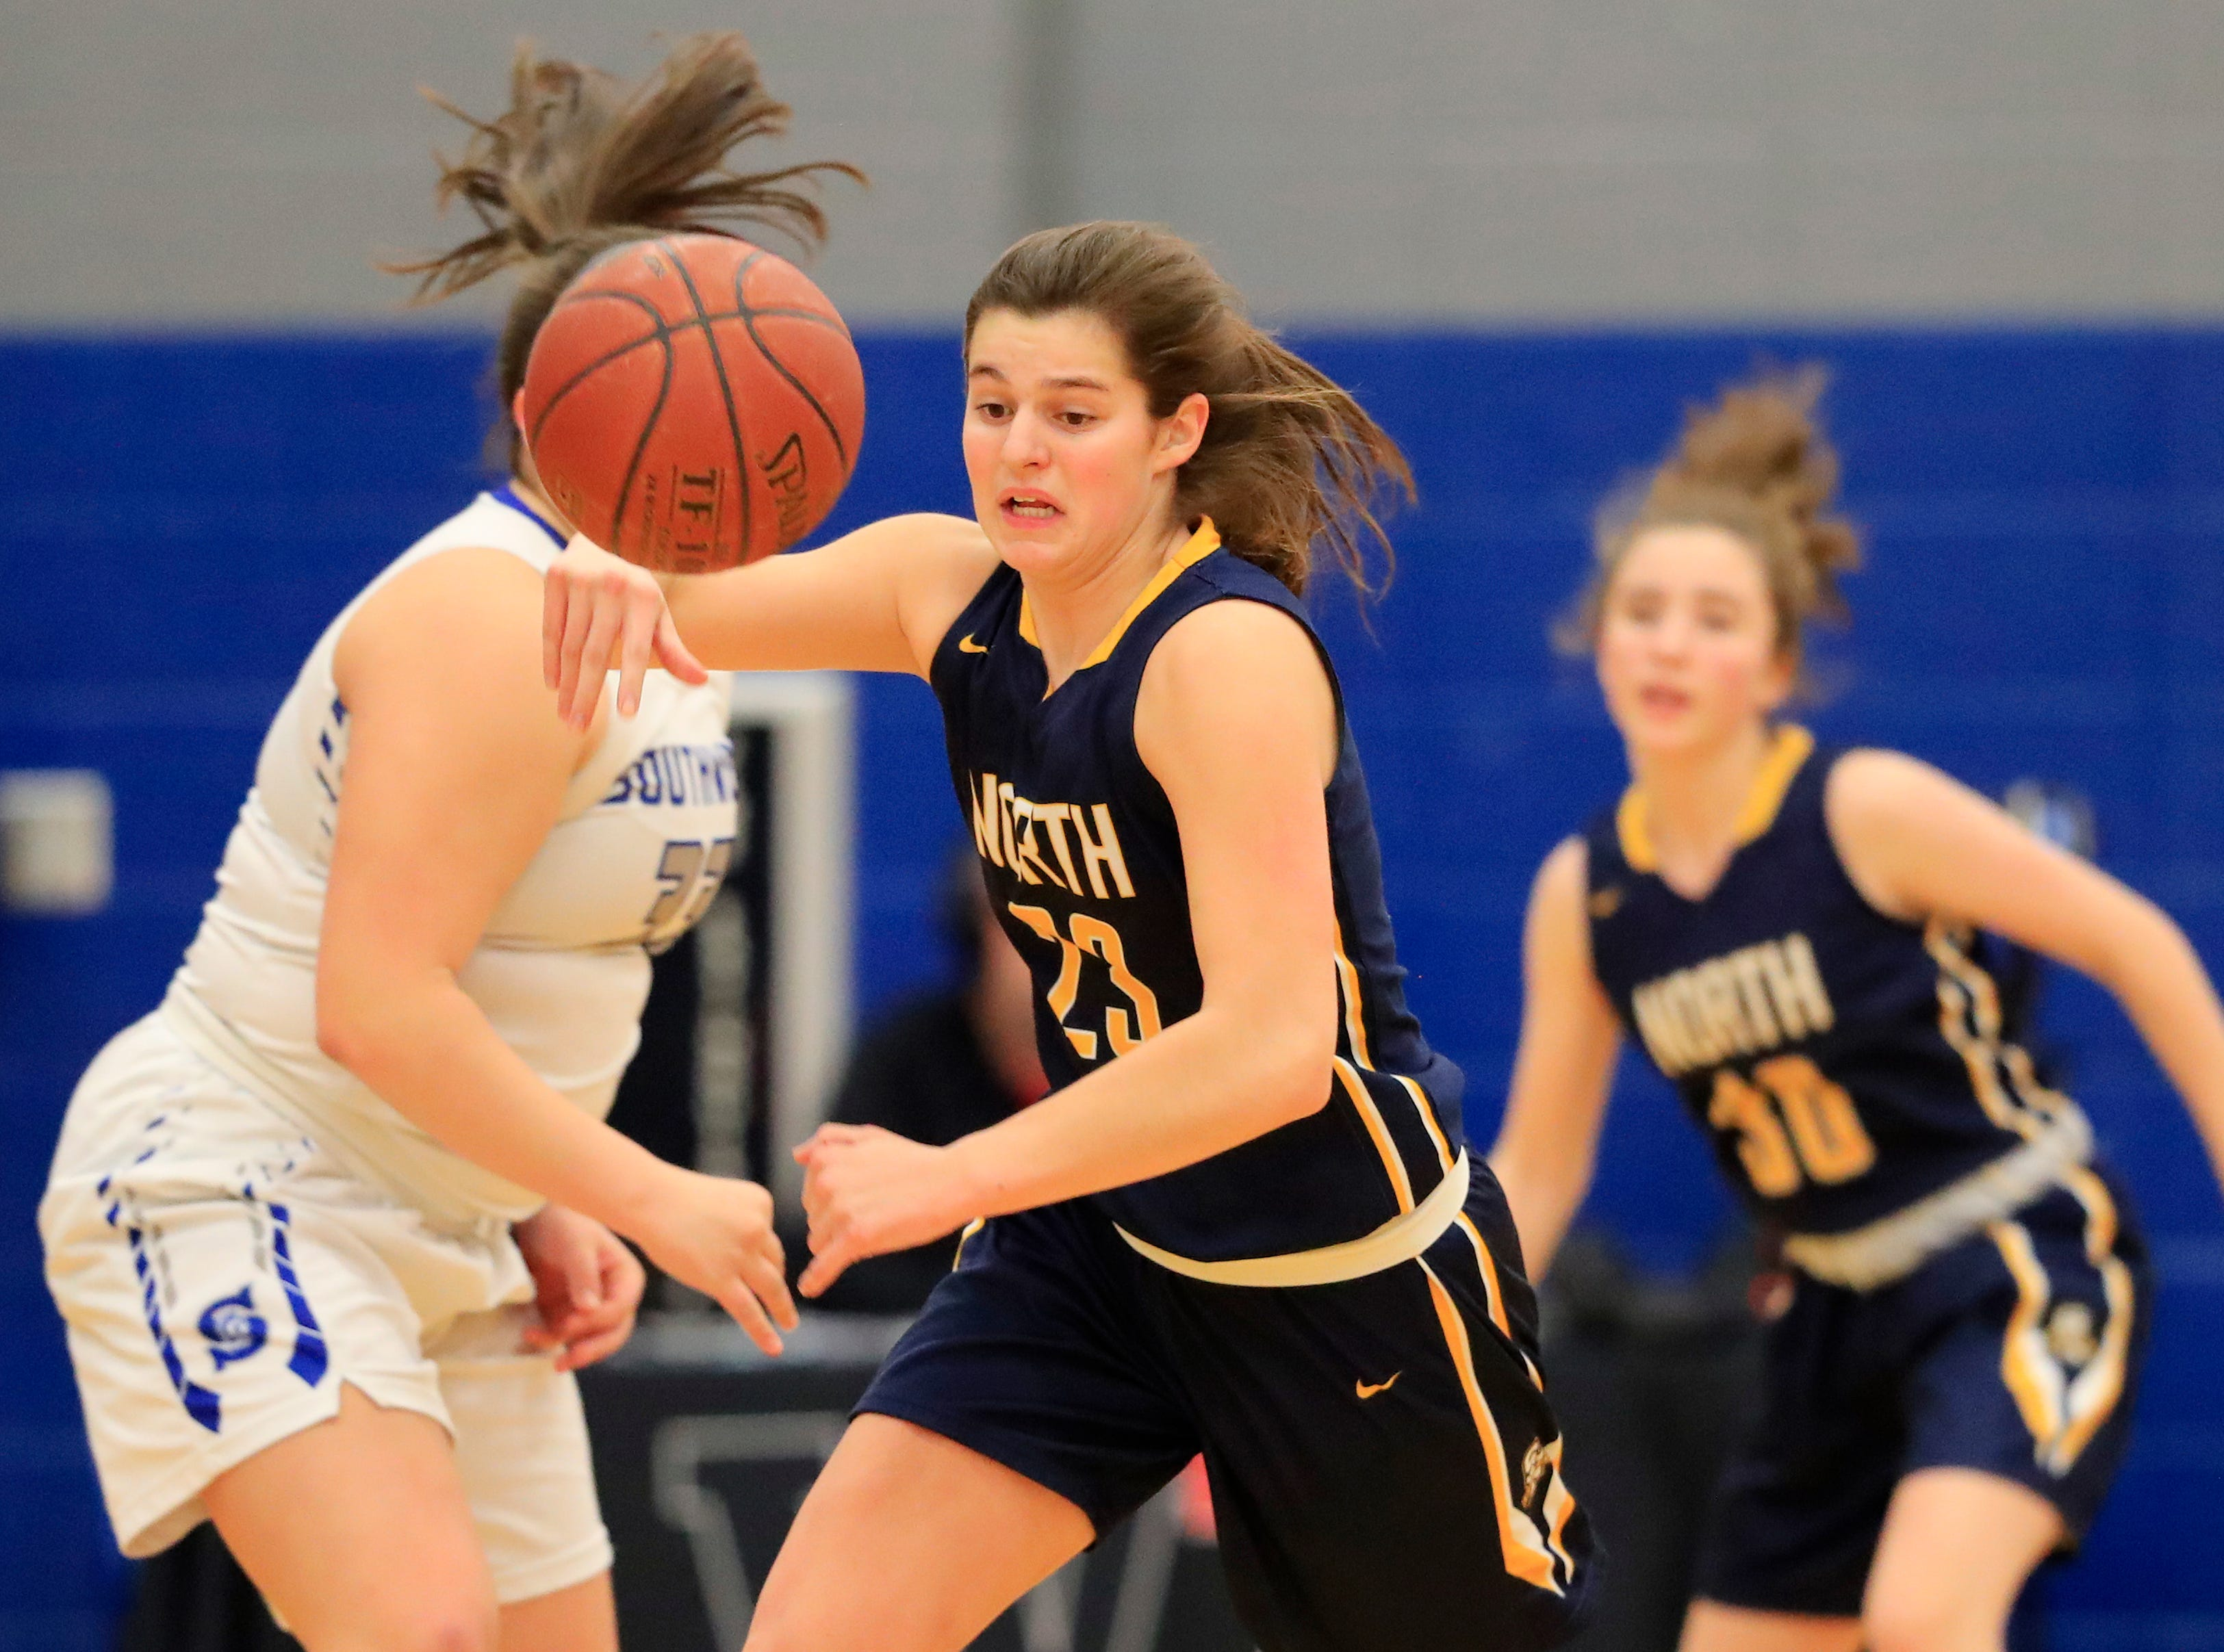 Sheboygan North's Meredith Opie (23) gets a steal against Green Bay Southwest in a girls basketball game at Southwest High School on Tuesday, February 5, 2019 in Green Bay, Wis.